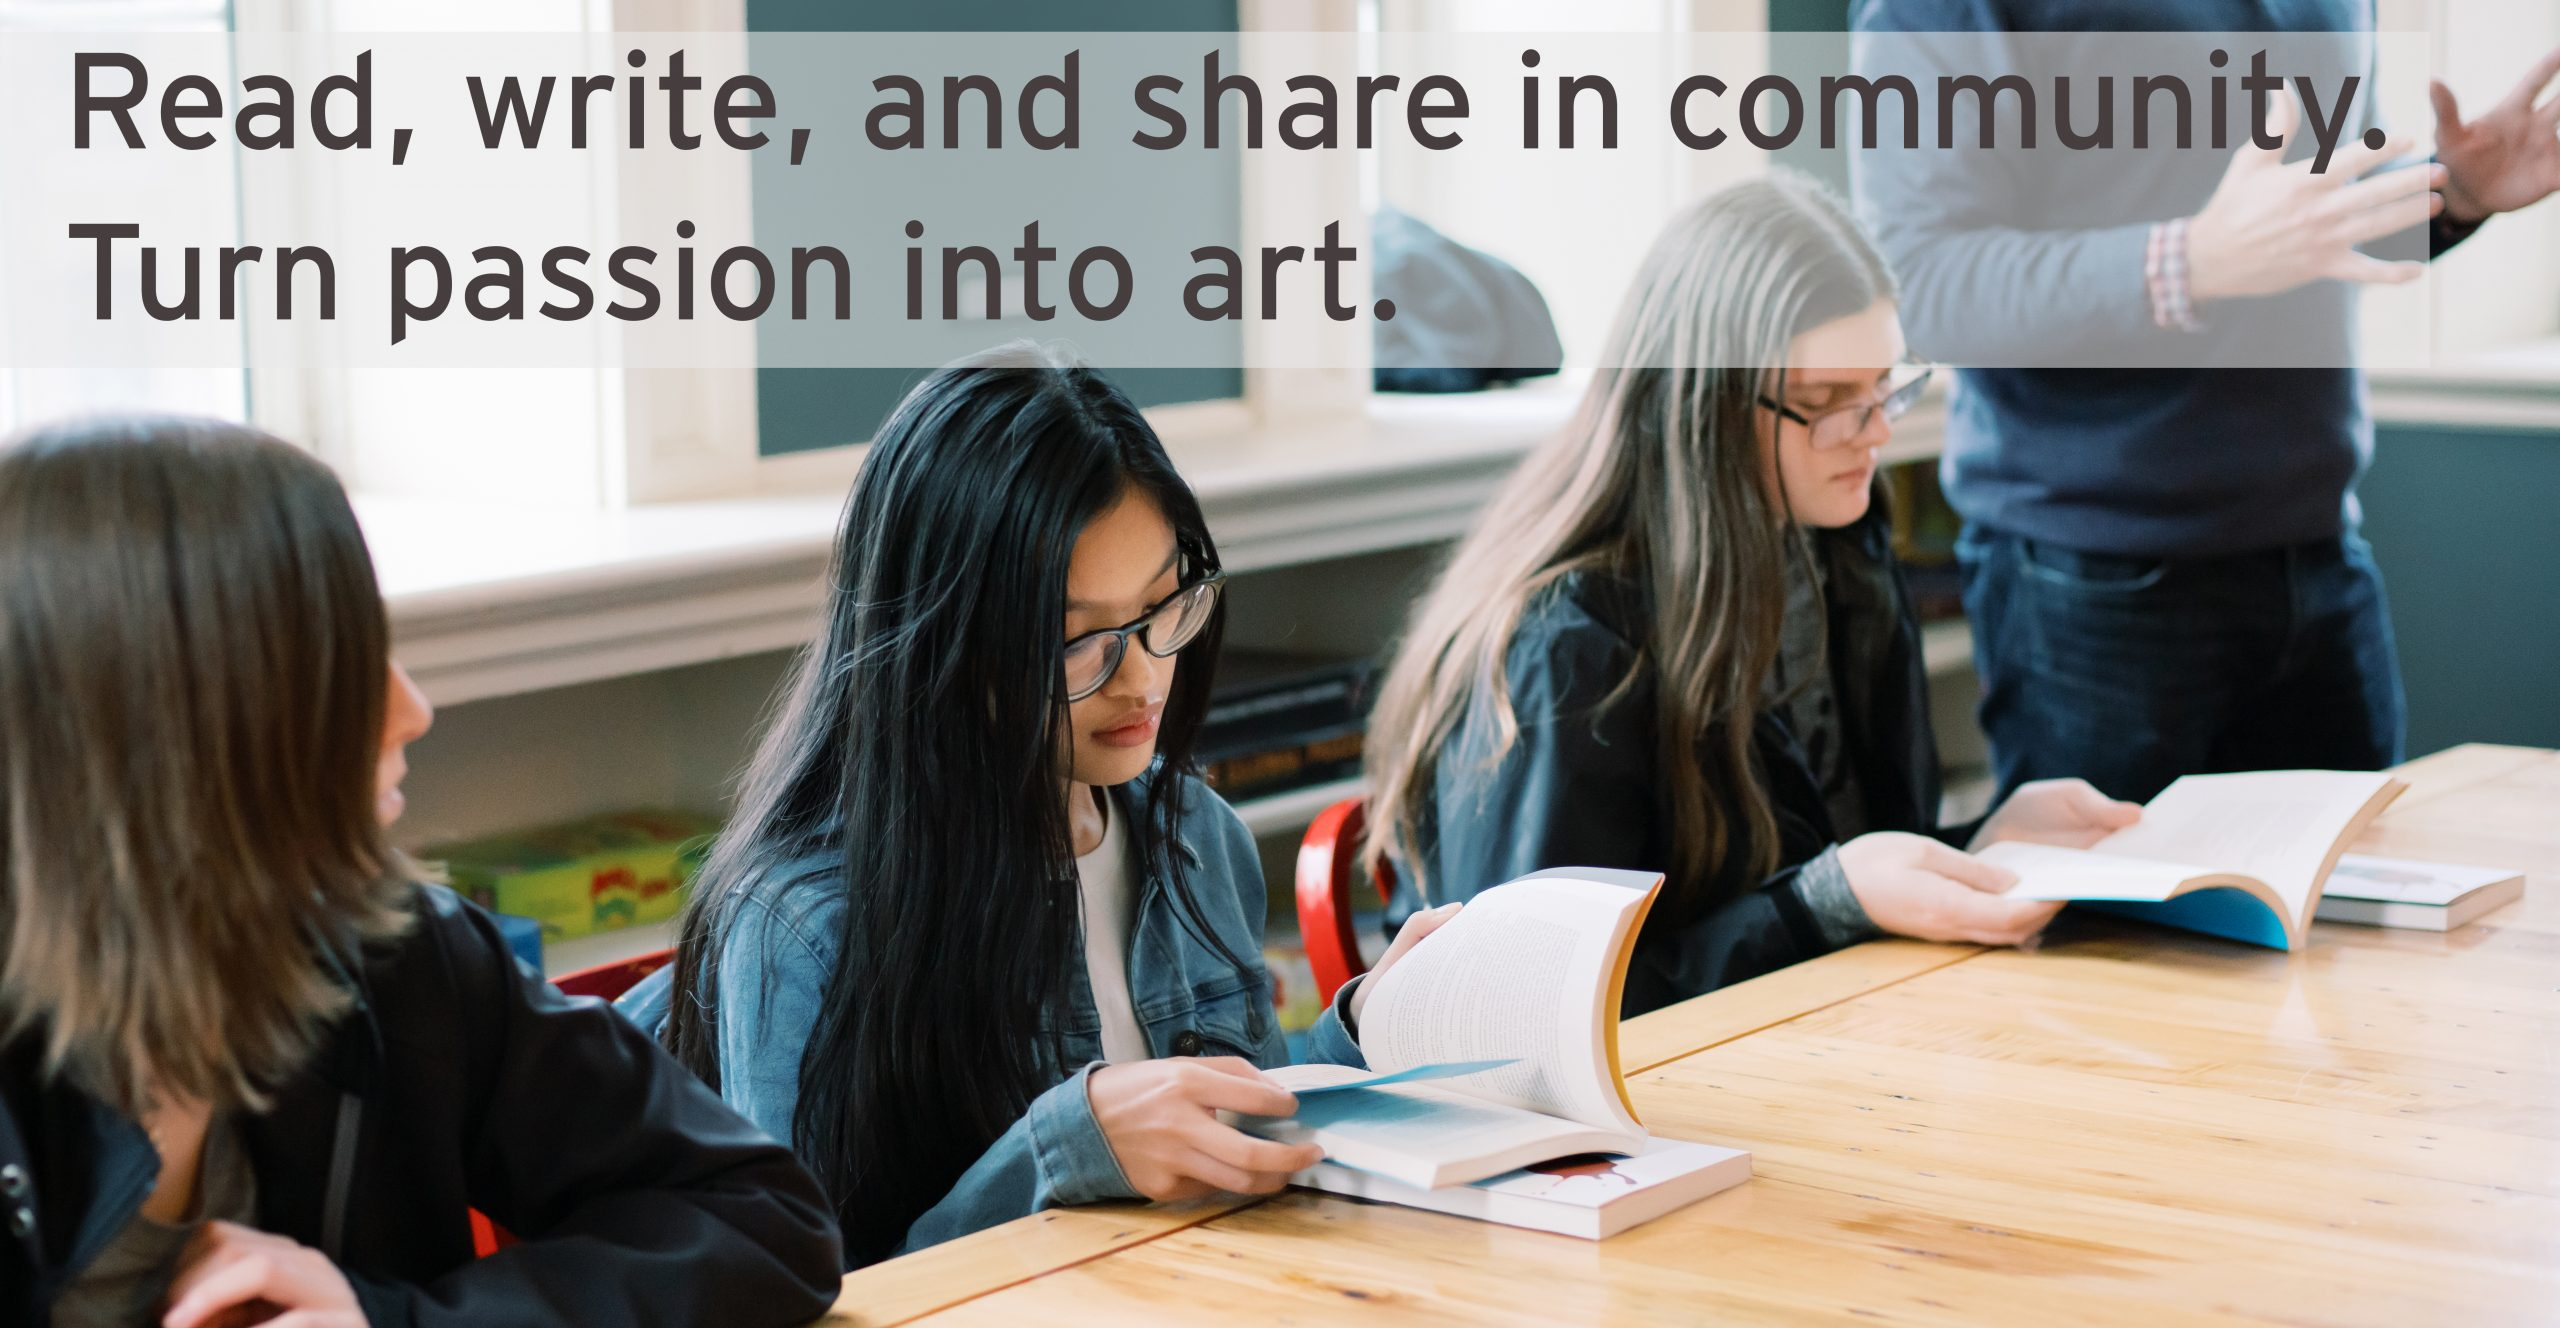 Students reading with a tagline: Read, write, and share in community. Turn passion into art.